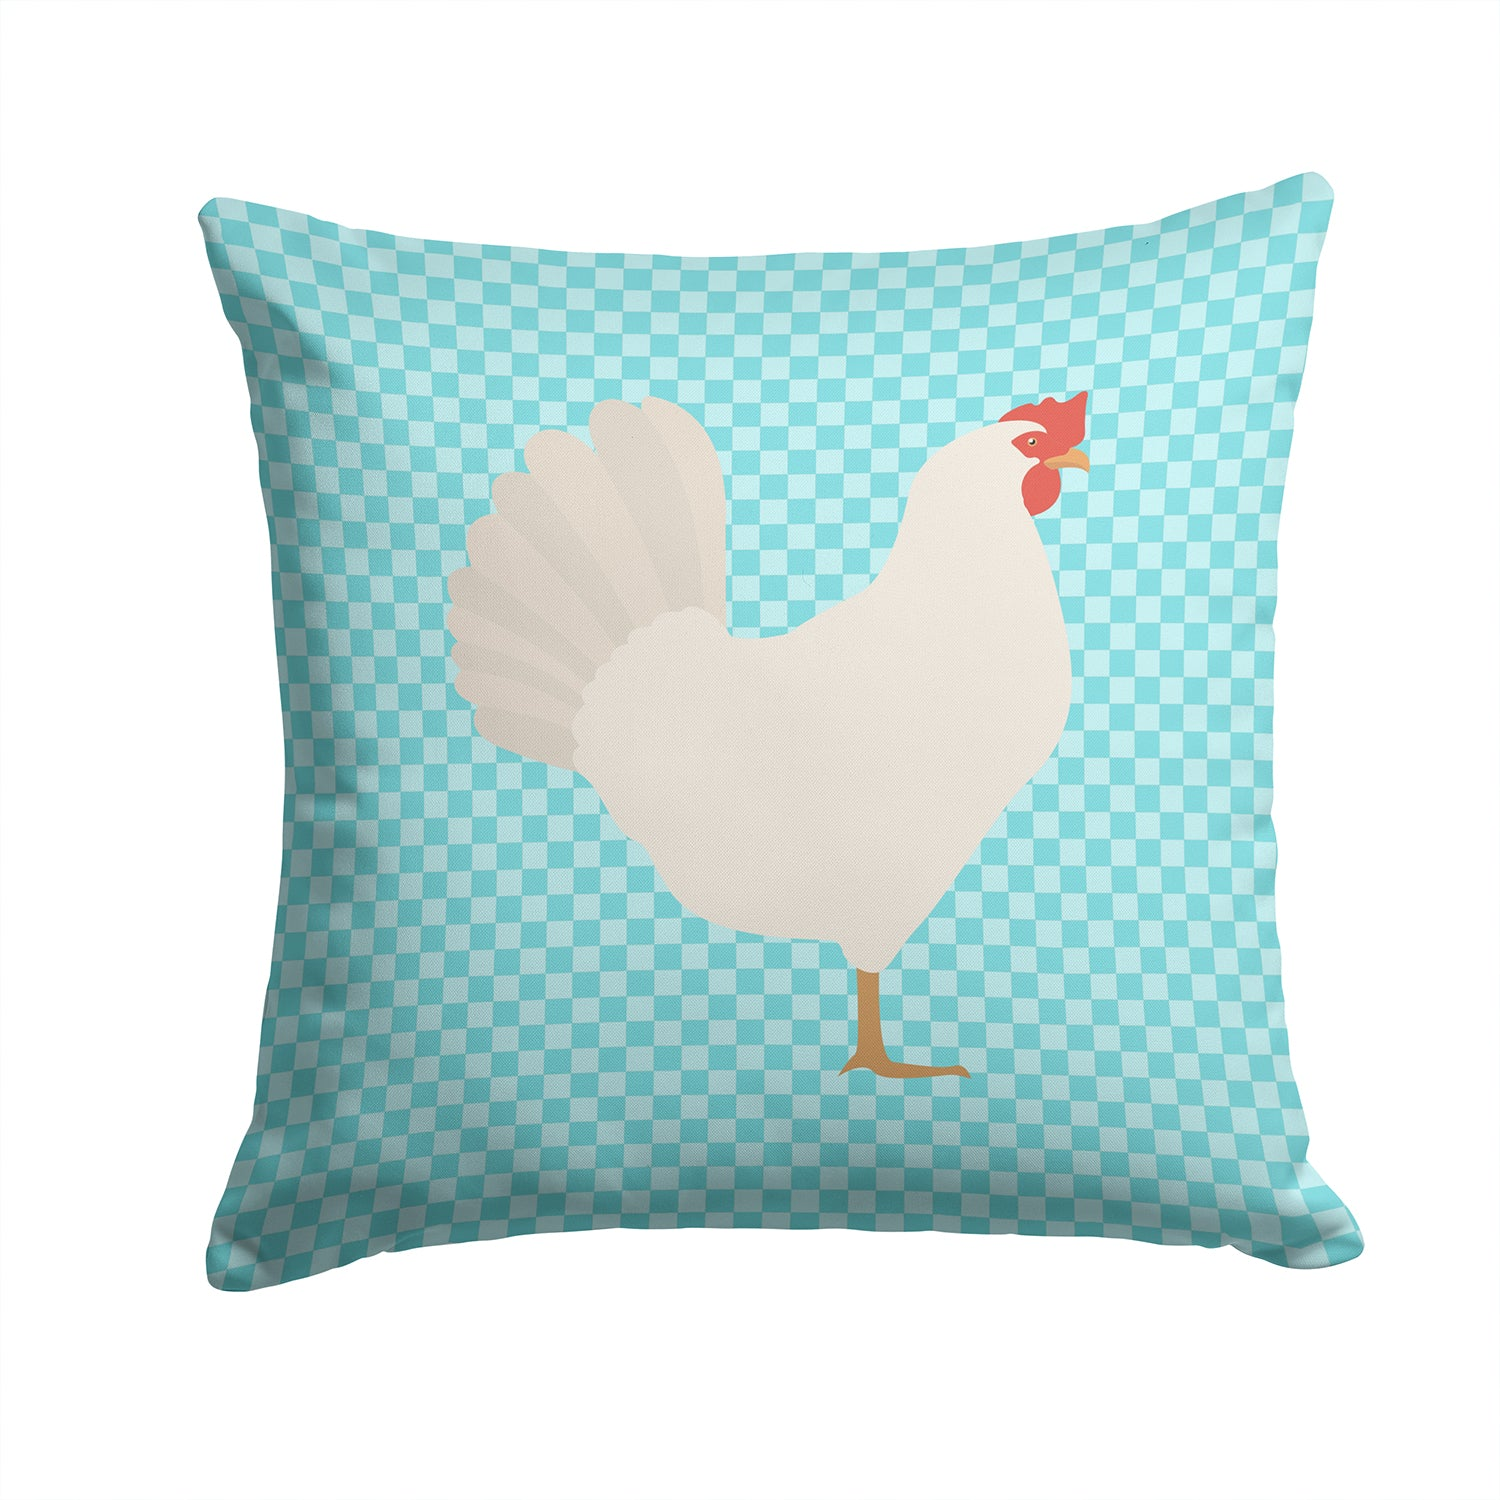 Leghorn Chicken Blue Check Fabric Decorative Pillow BB8014PW1414 by Caroline's Treasures